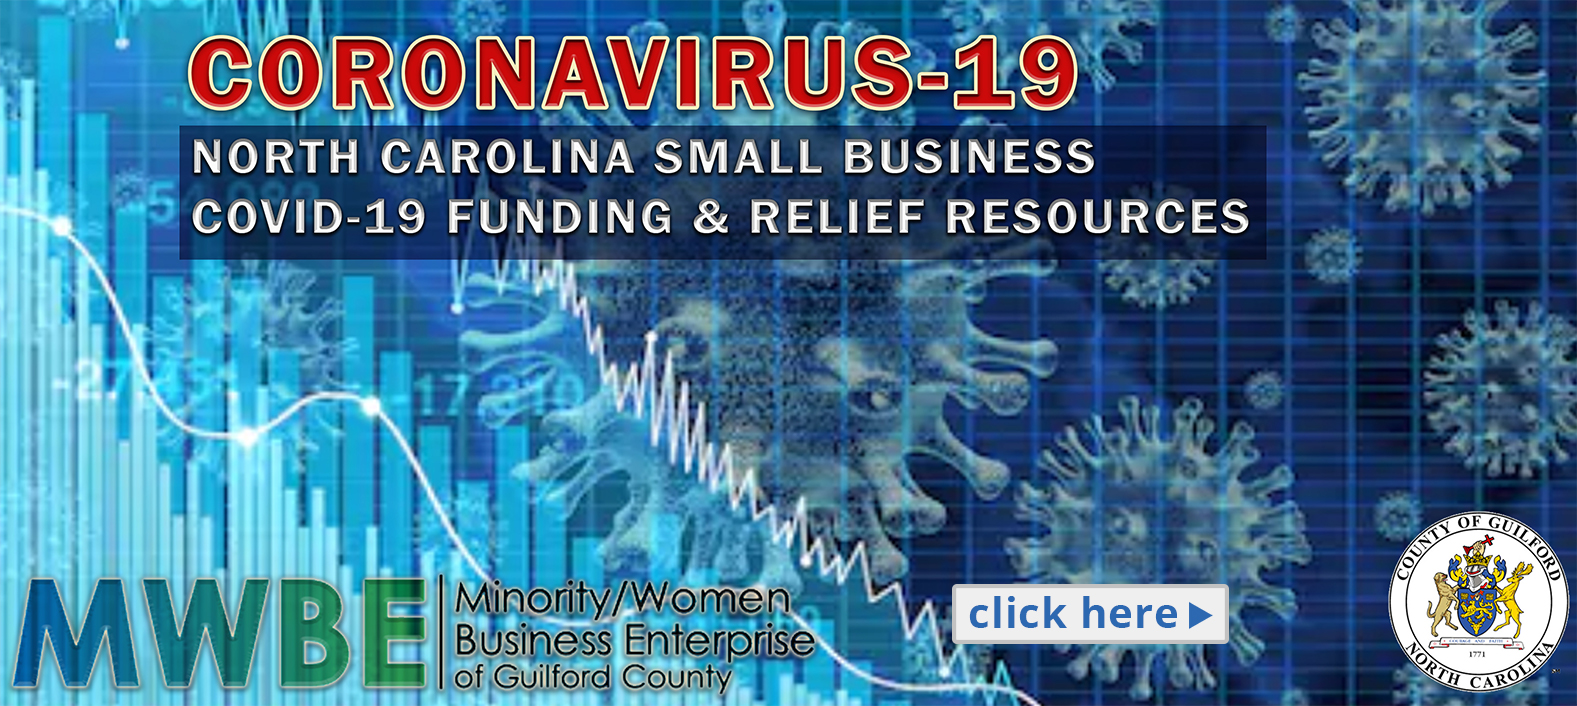 North Carolina Small Business Business COVID-19 Funding and Relief Resources